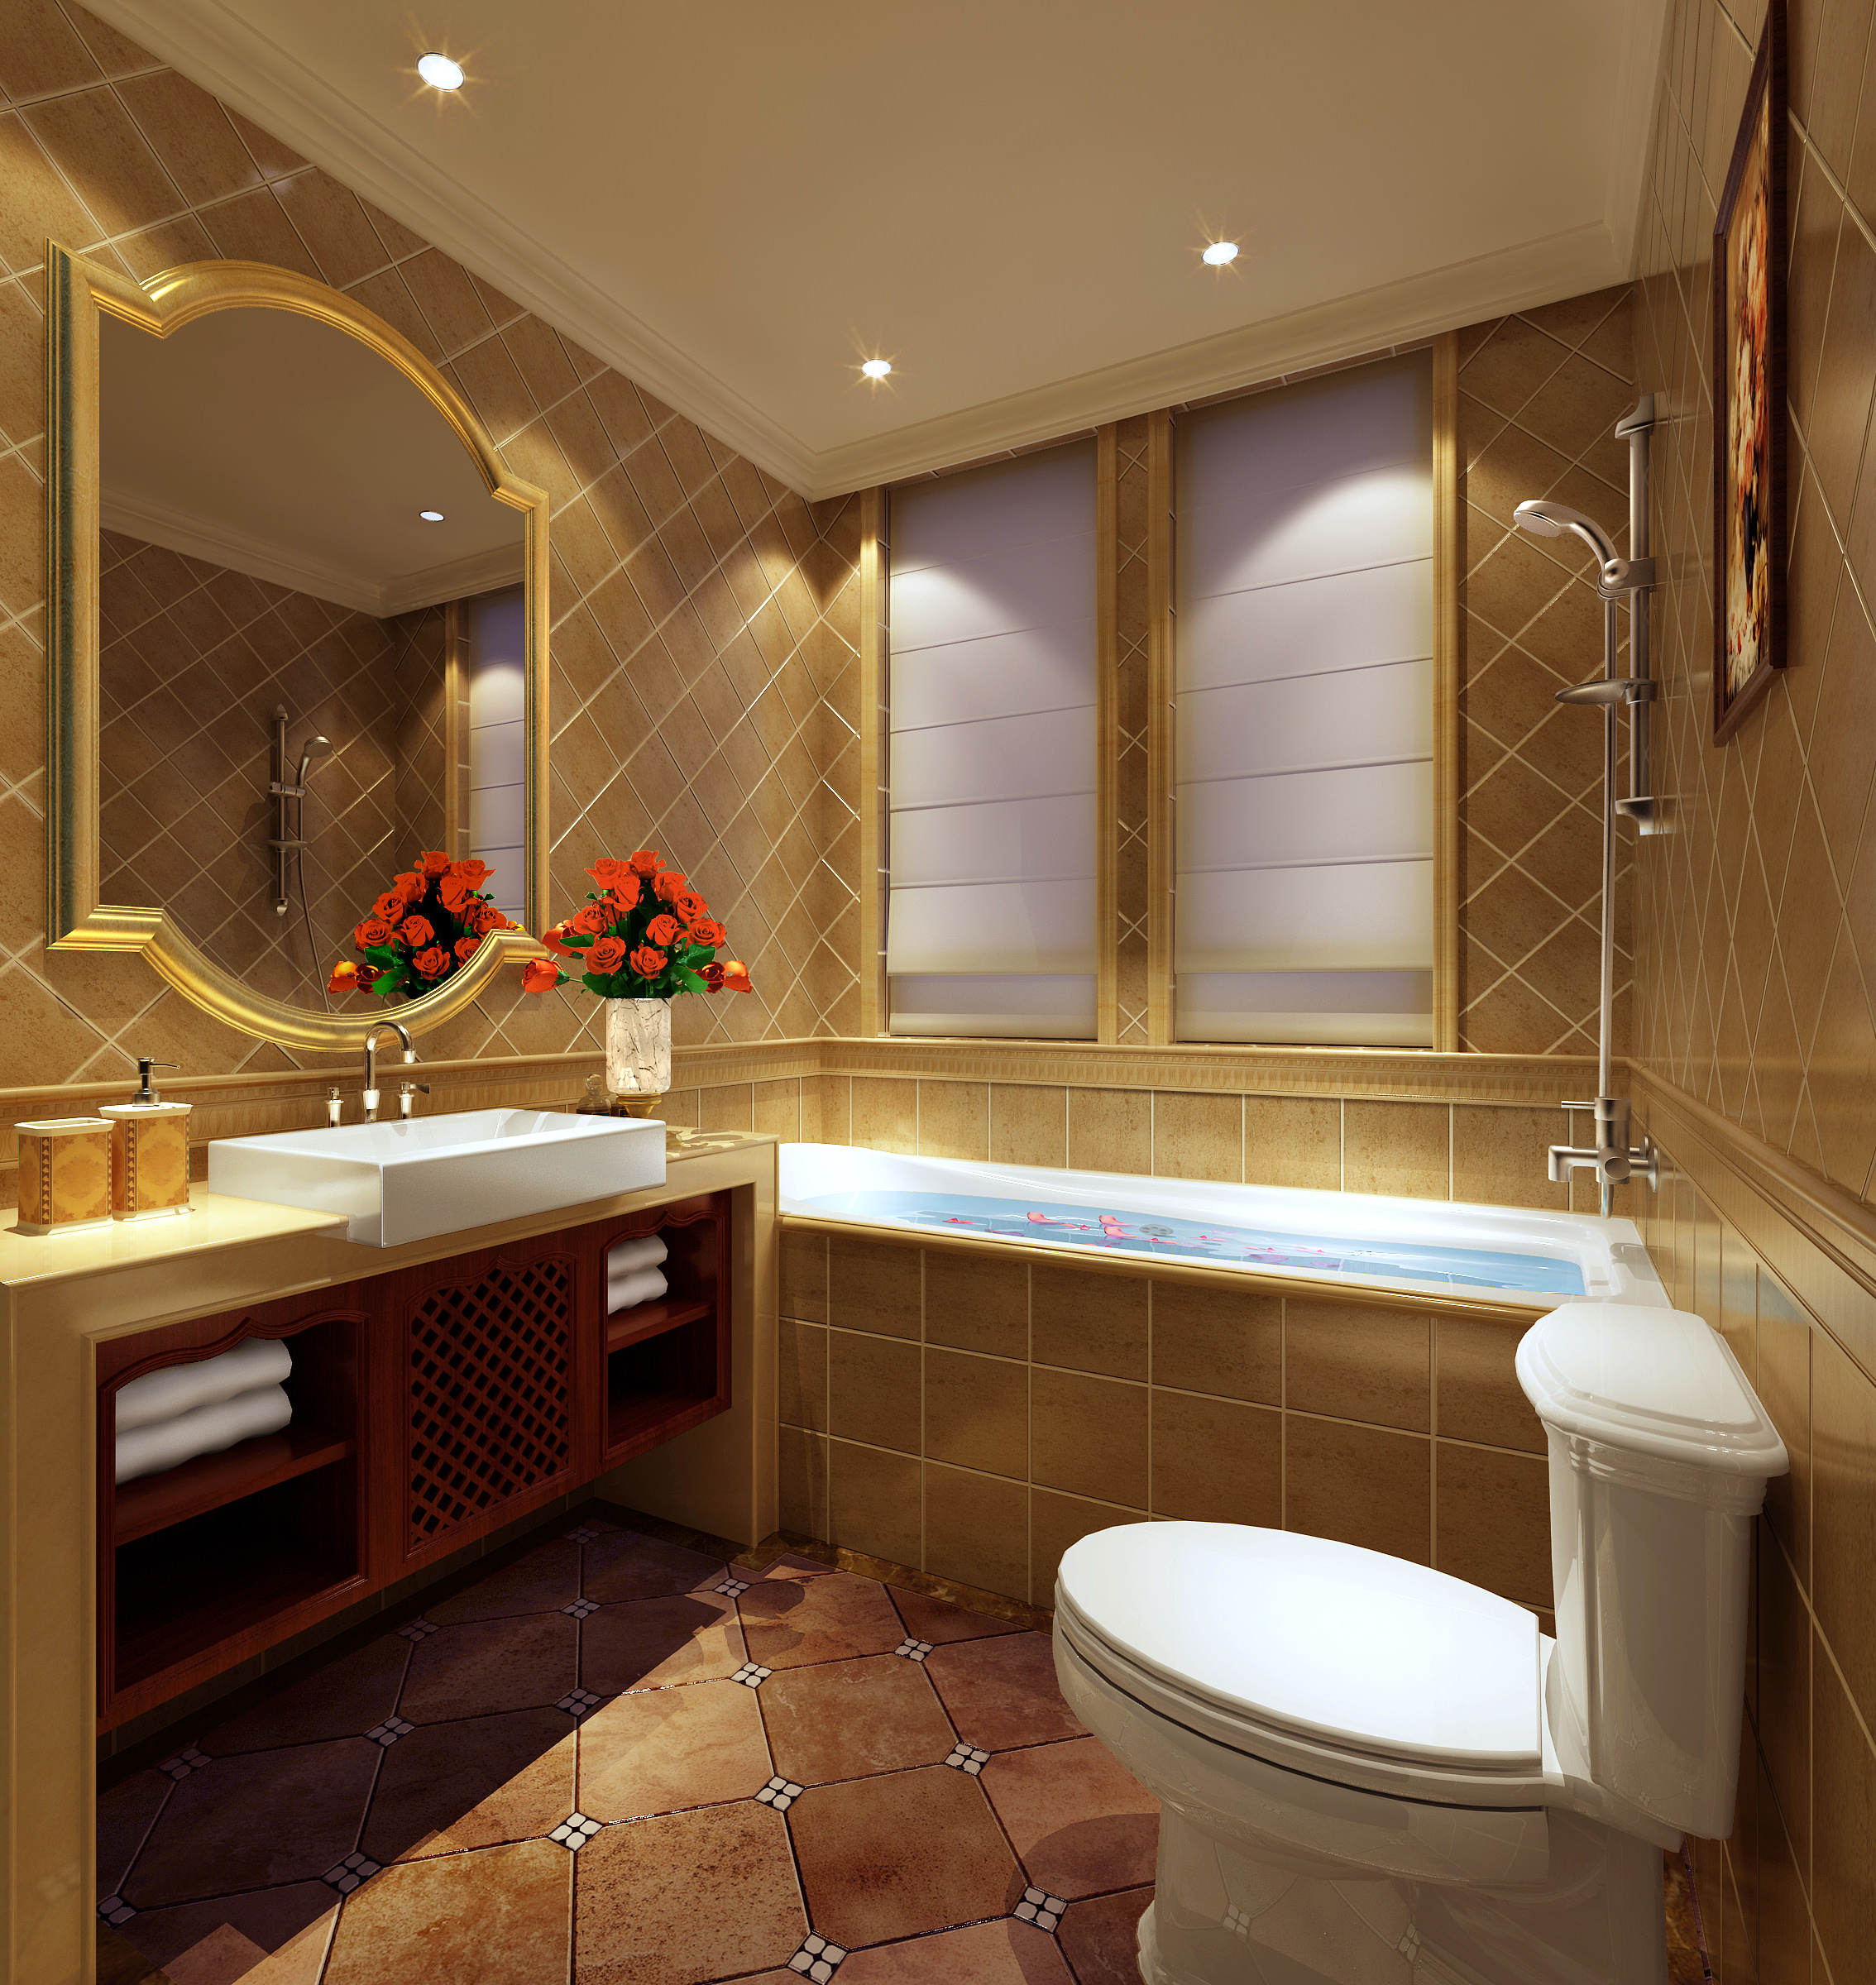 Luxury Bathroom 3d Model Max